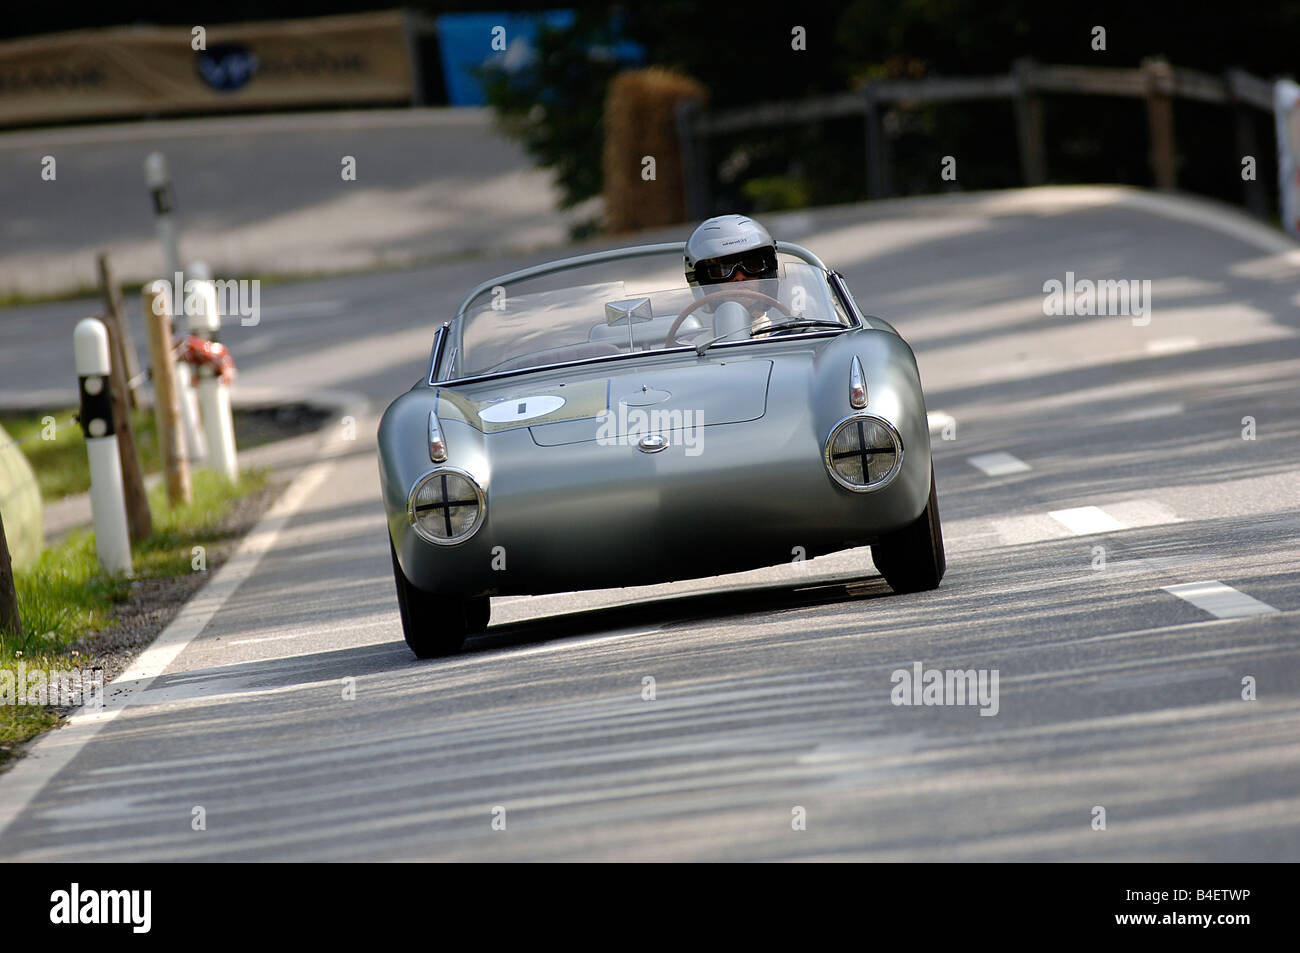 Car, BMW 700 RS, Sports Car, Racing Car, Vintage Car, Model Year Approx.  1960, 1960s, Sixties , Driving, Front View, Road, Count